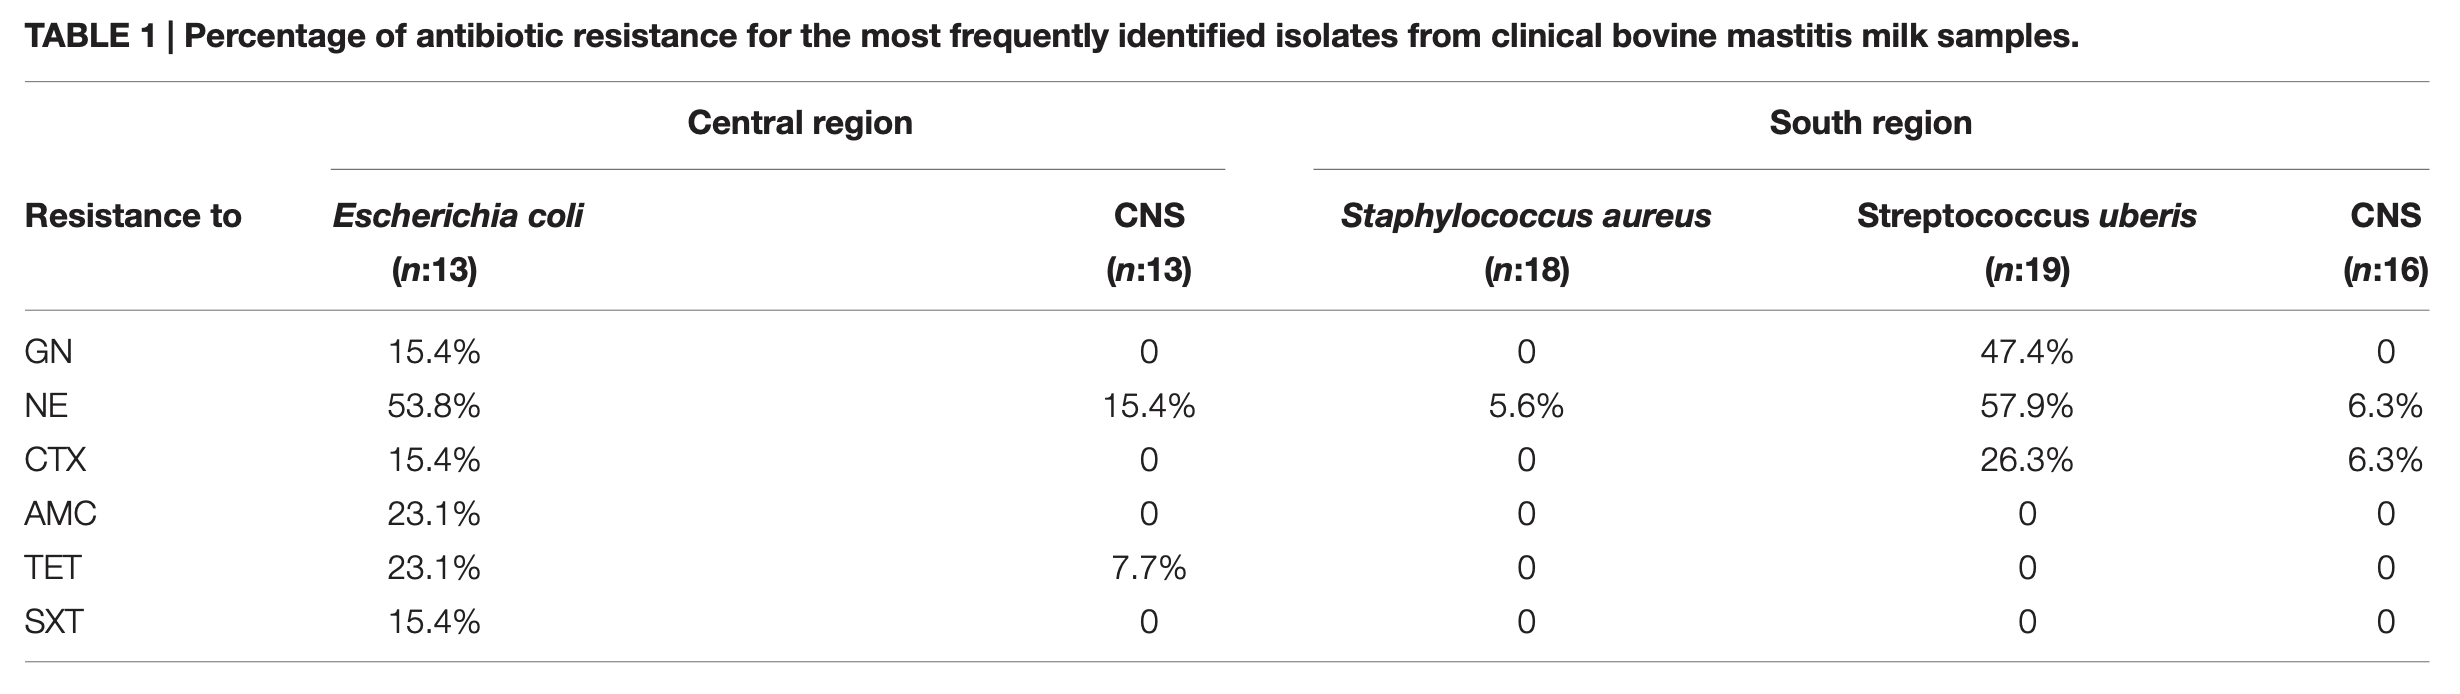 Percentage of antibiotic resistance for the most frequently identified isolates from clinical bovine mastitis milk samples